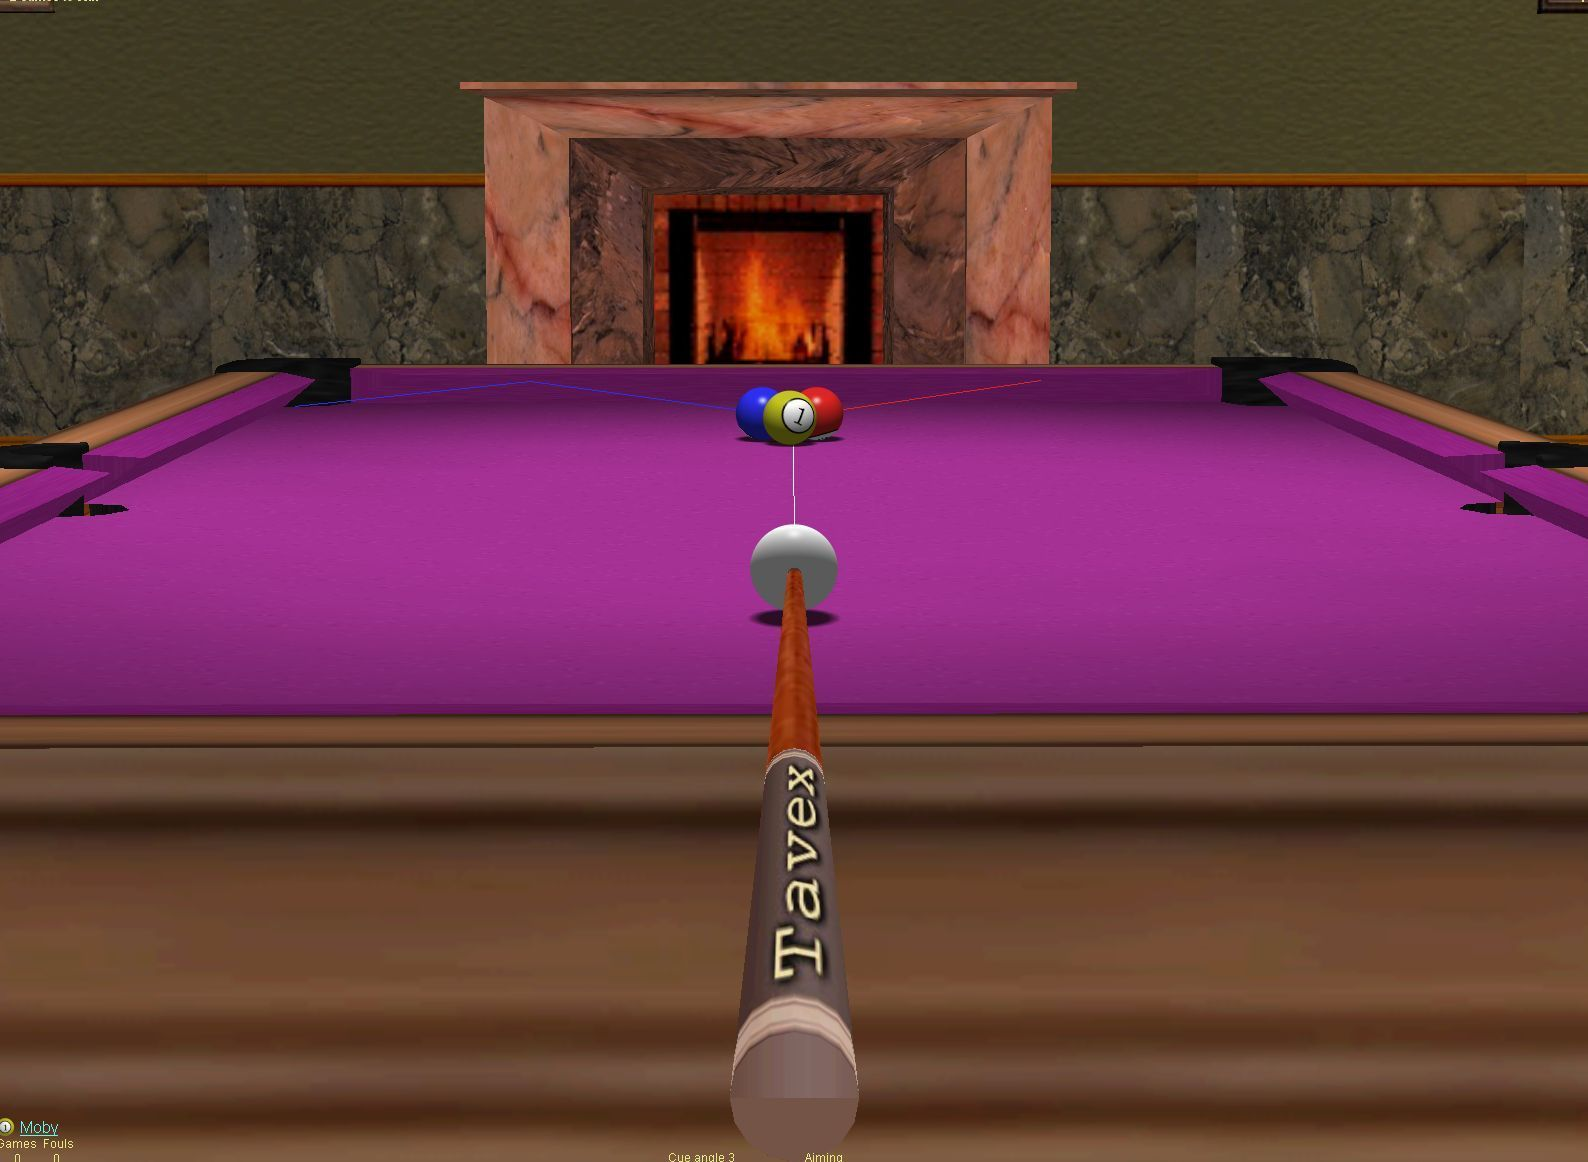 Live Pool Windows In a practice session the player gets sight lines to aid them. This shot shows them and the ability to zoom in/out of the table.